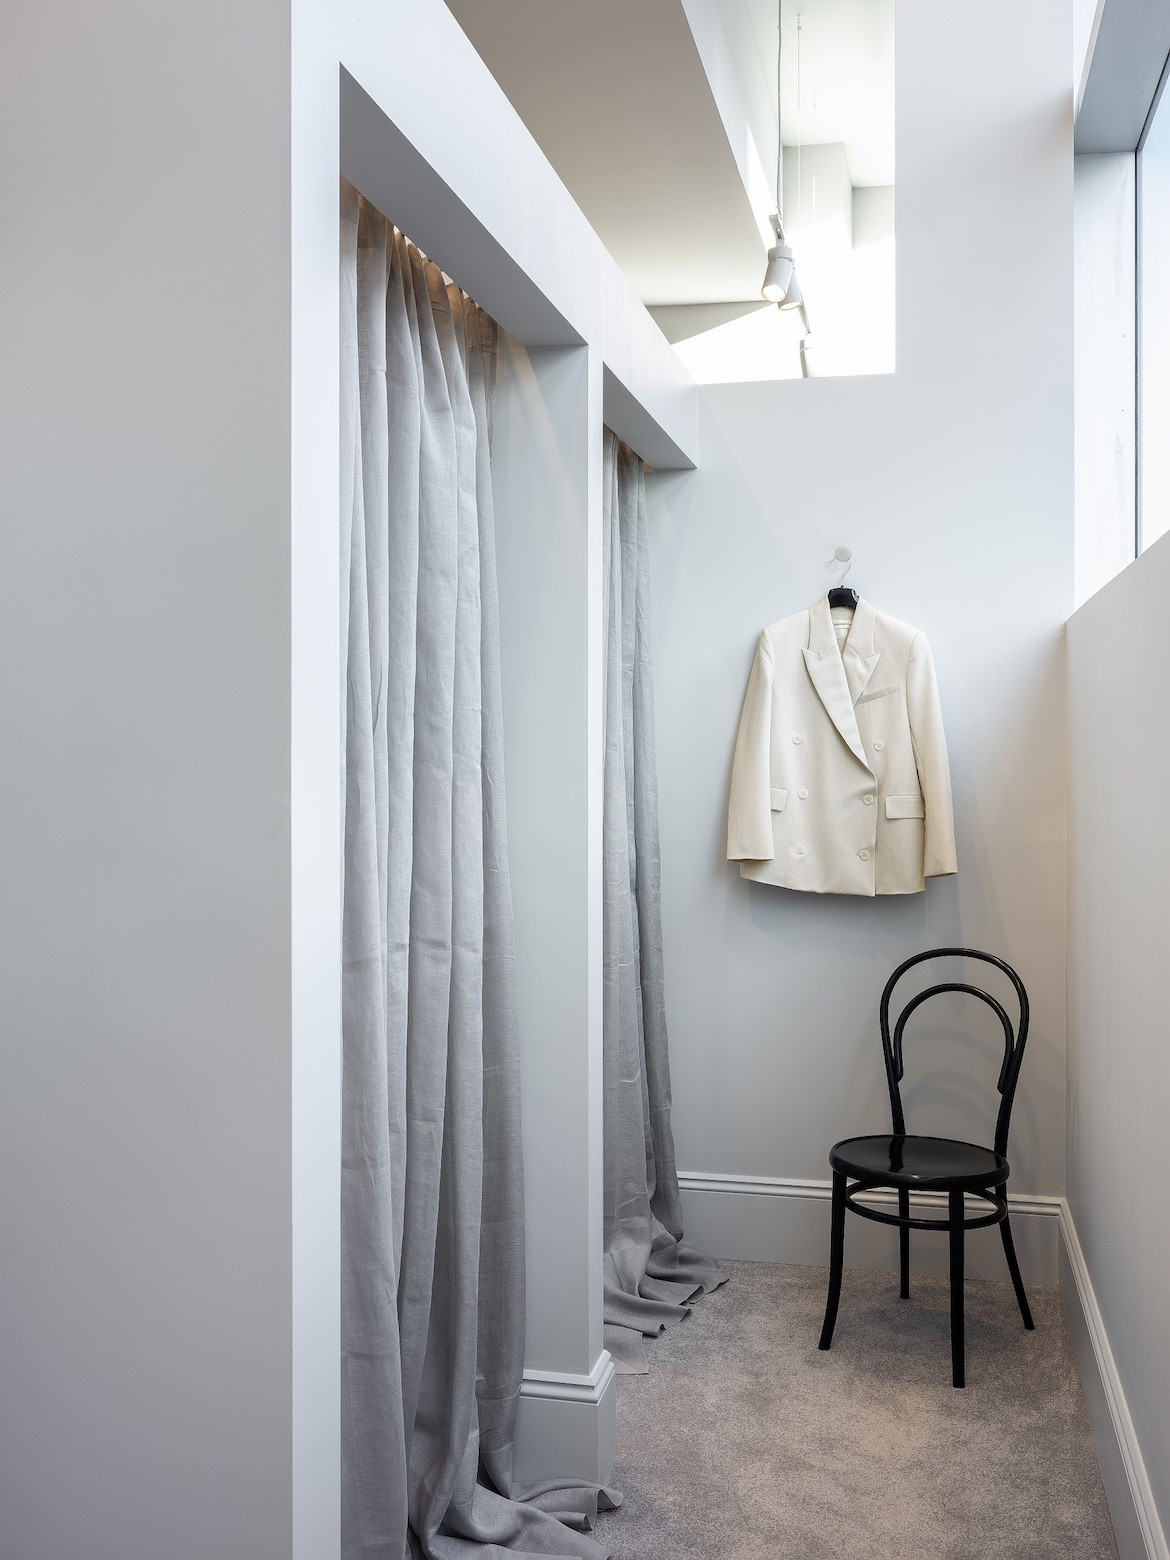 A changeroom with grey curtains, grey cashmere carpets, a black chair and a jacket hanging on the wall.